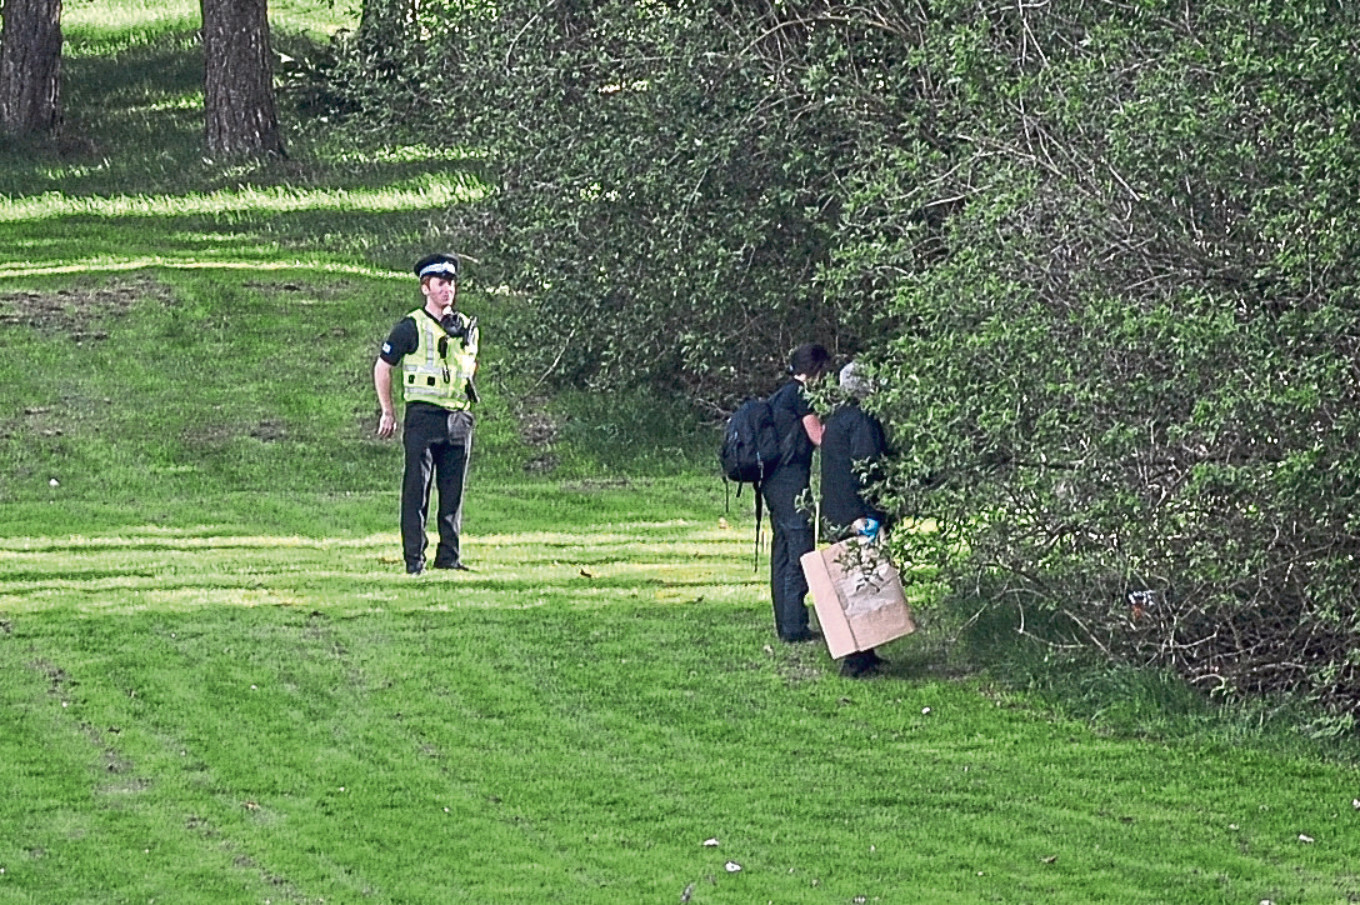 Forensic officers investigate the scene of the crime at Caird Park Golf Club, Dundee